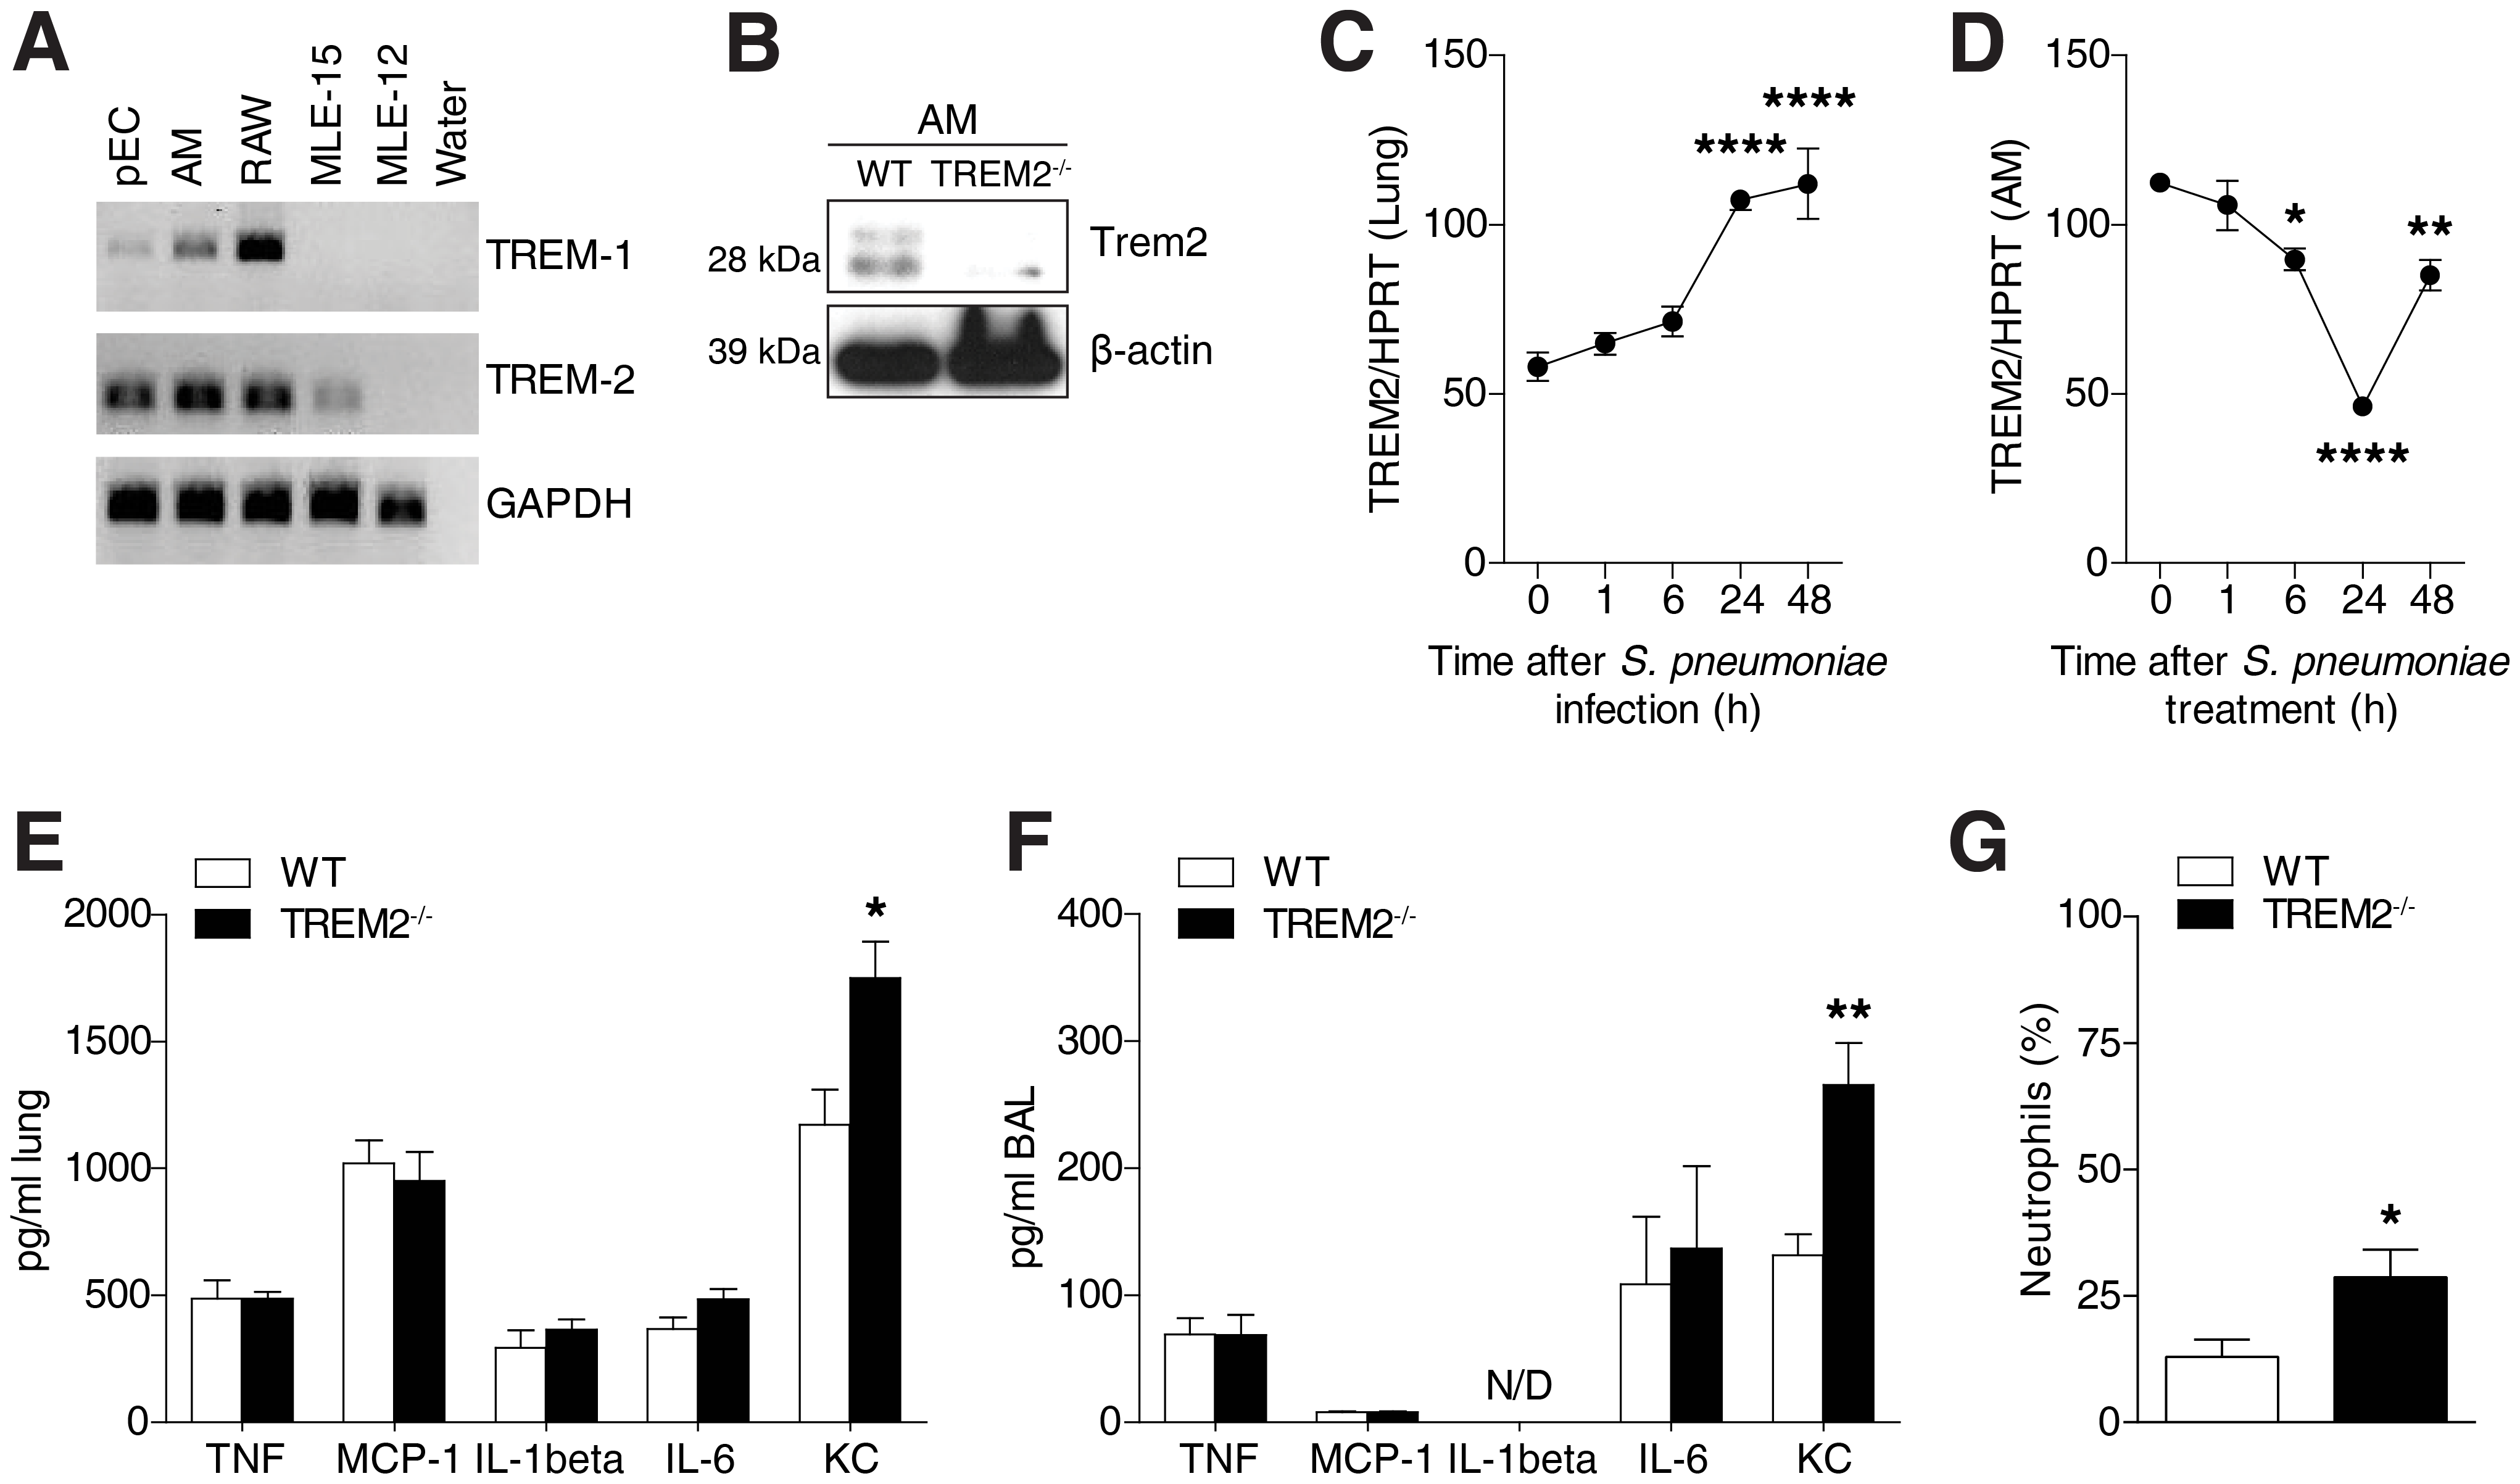 Pulmonary TREM-2 expression and function during <i>S. pneumoniae</i> induced inflammation.